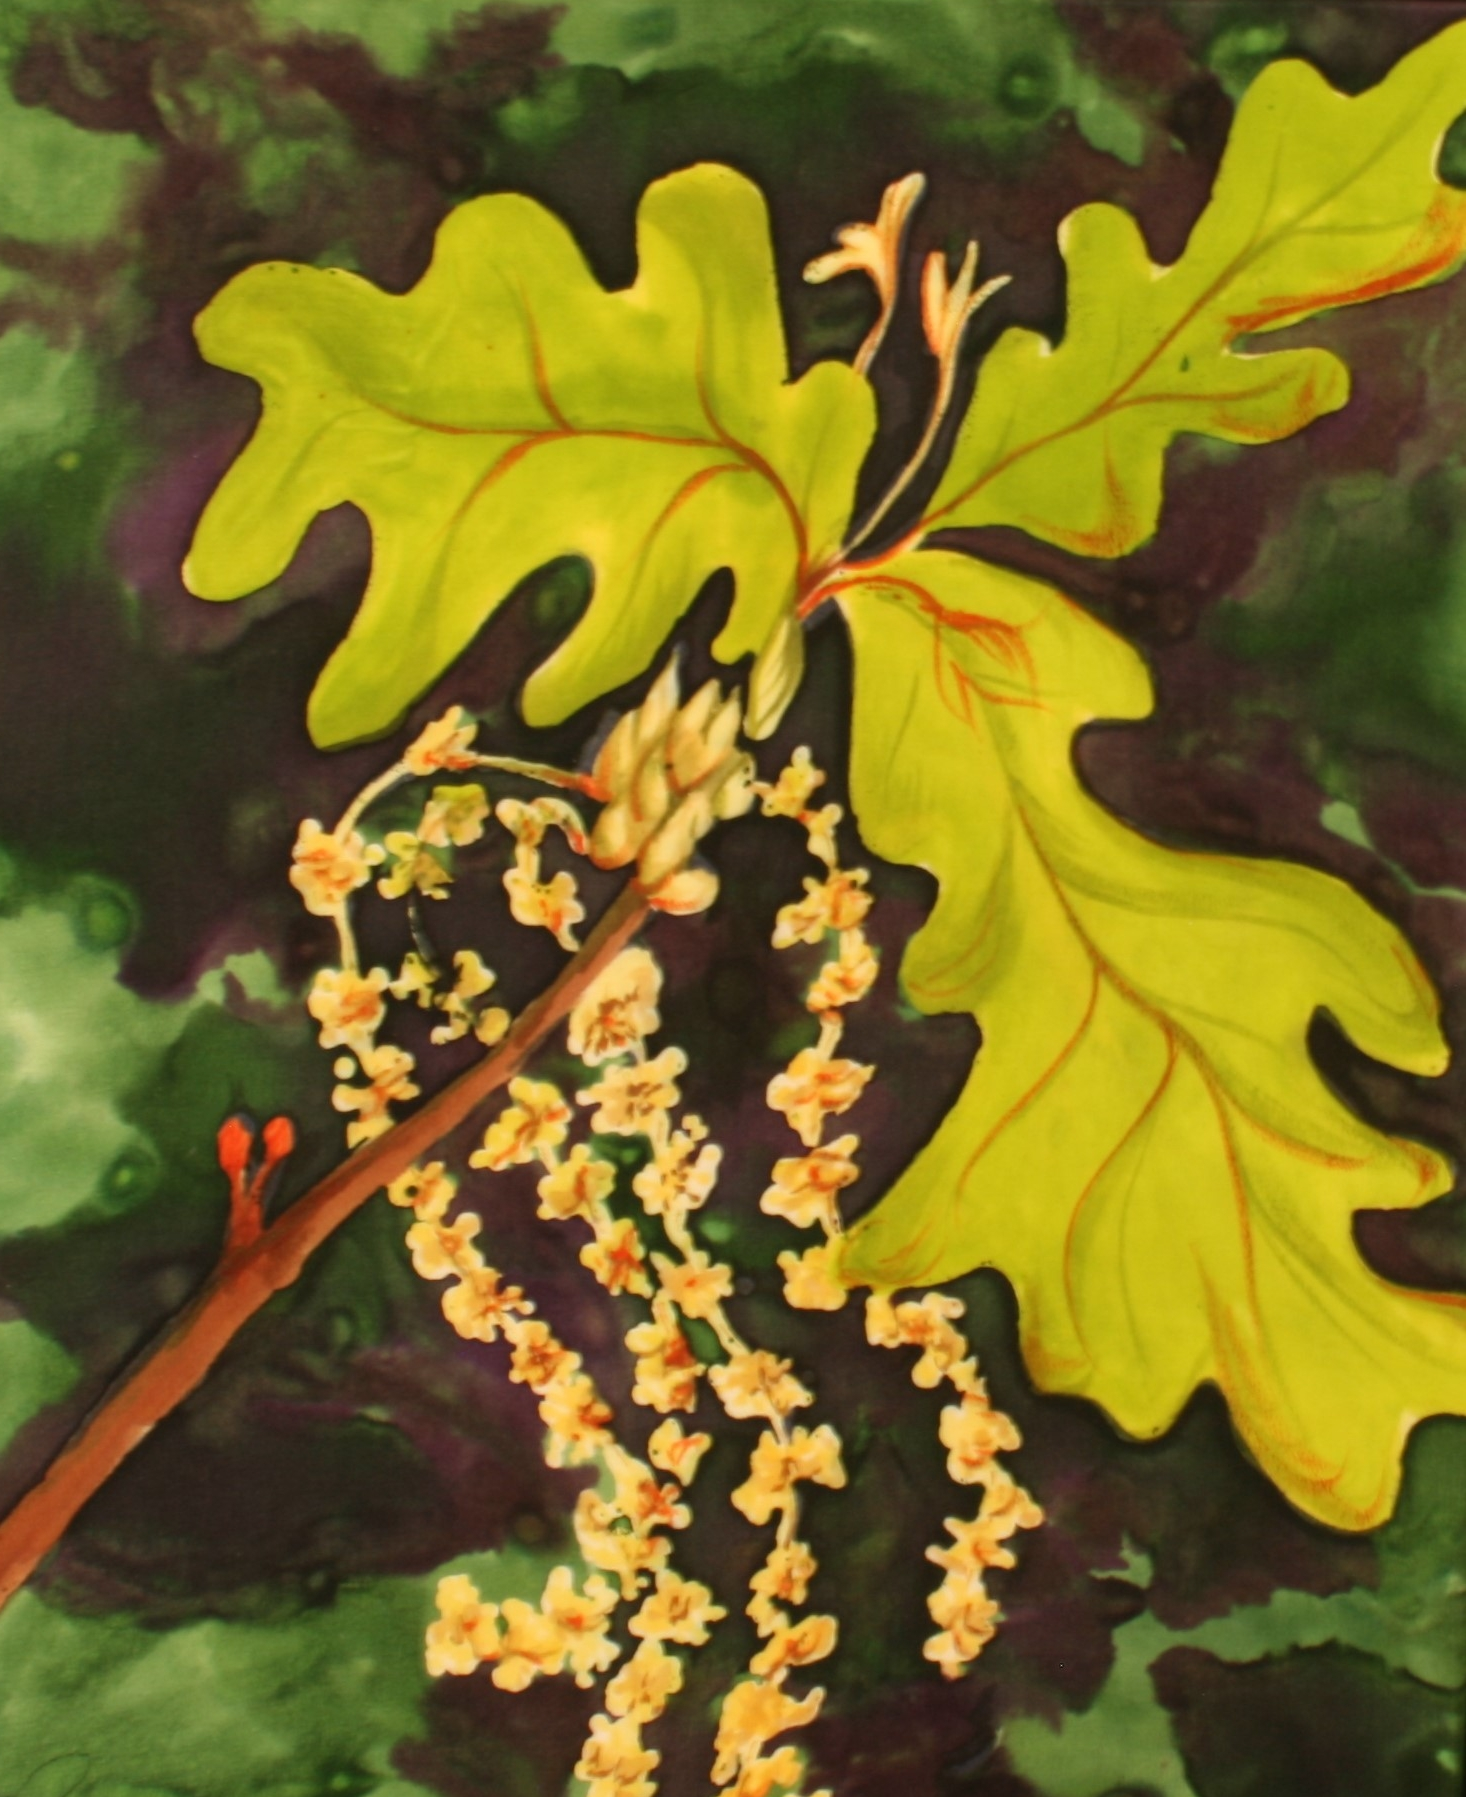 WHITE OAK FLOWERS 10x12  $175.00 French Dyes on silk                           BUY NOW